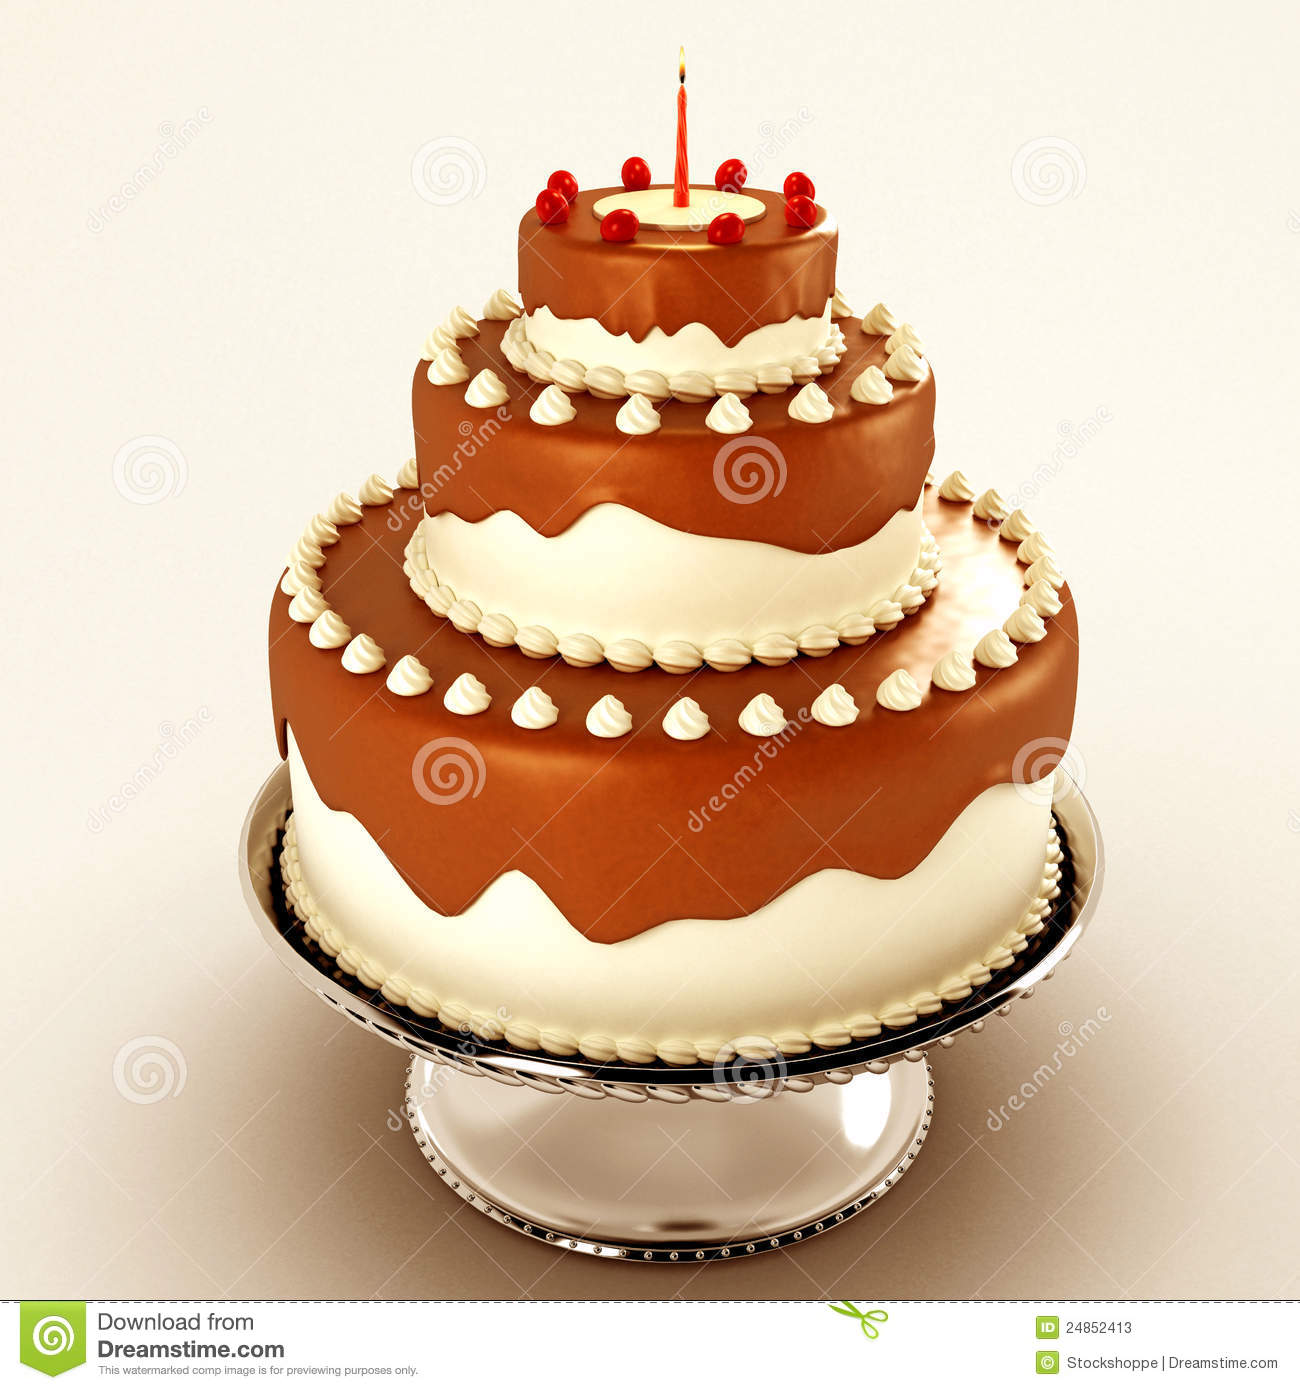 Yummy Chocolate Cake Stock Photos Image 24852413